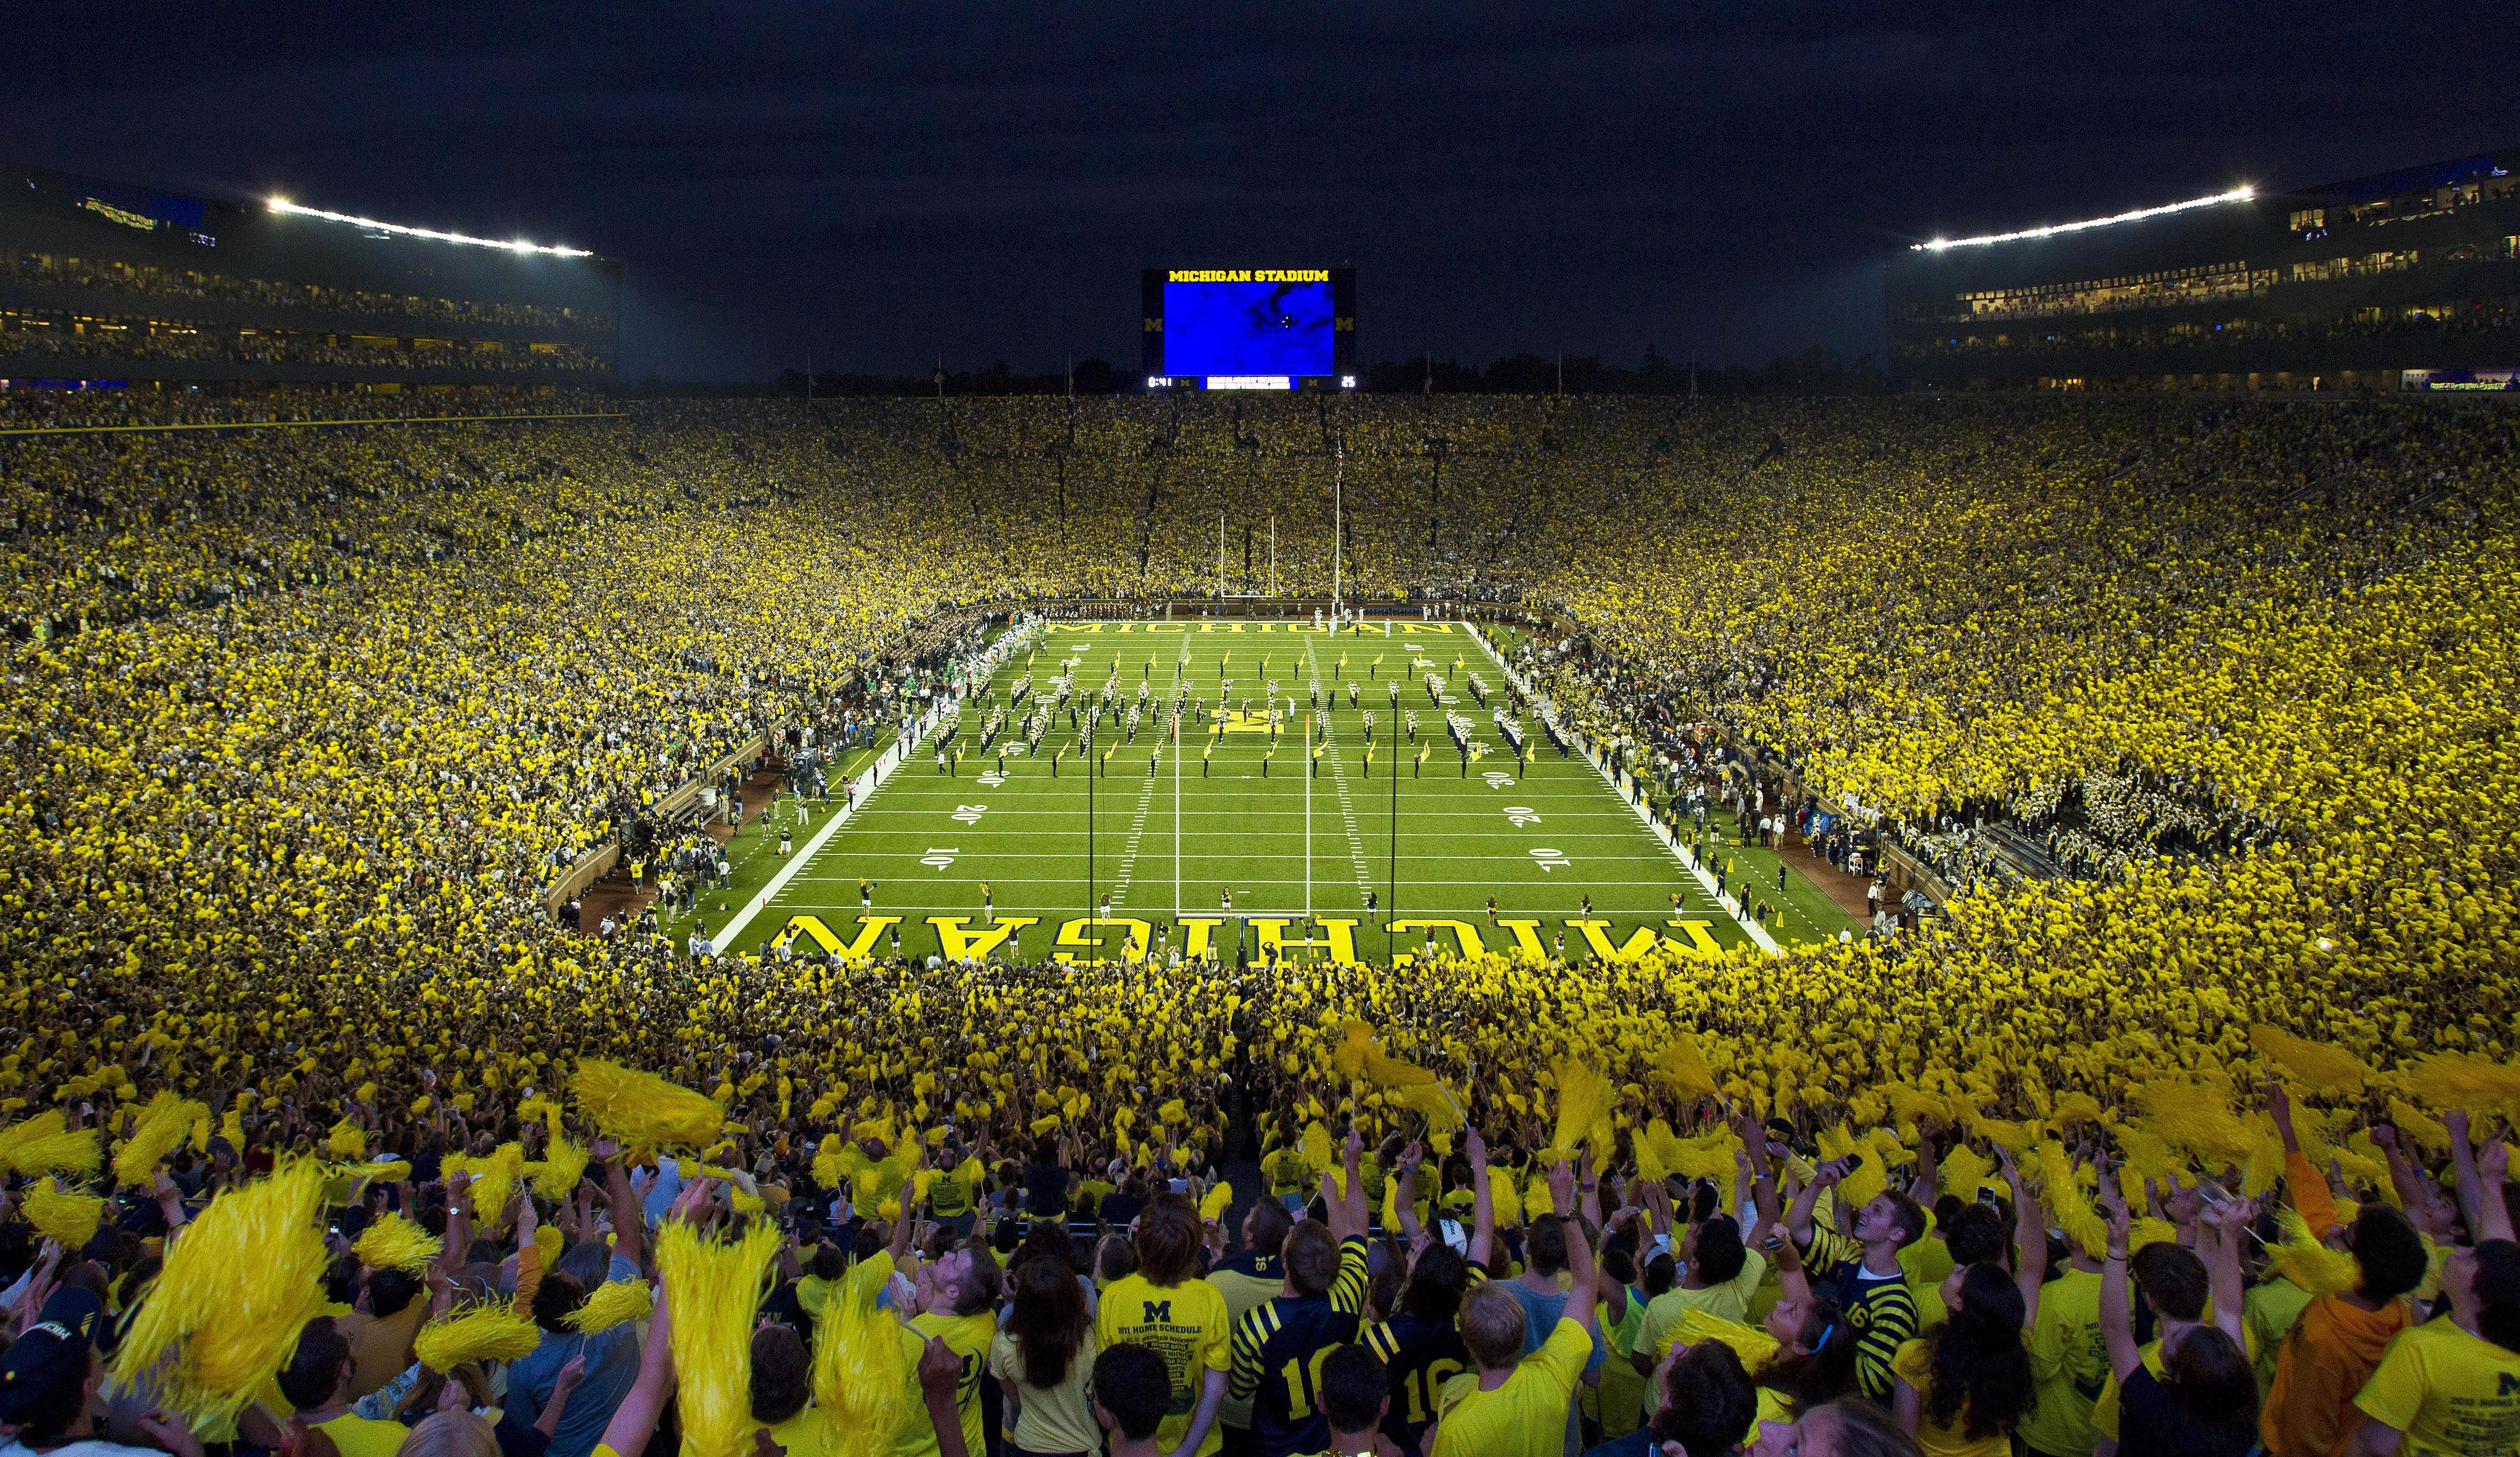 Michigan Stadium guide by Tablebox